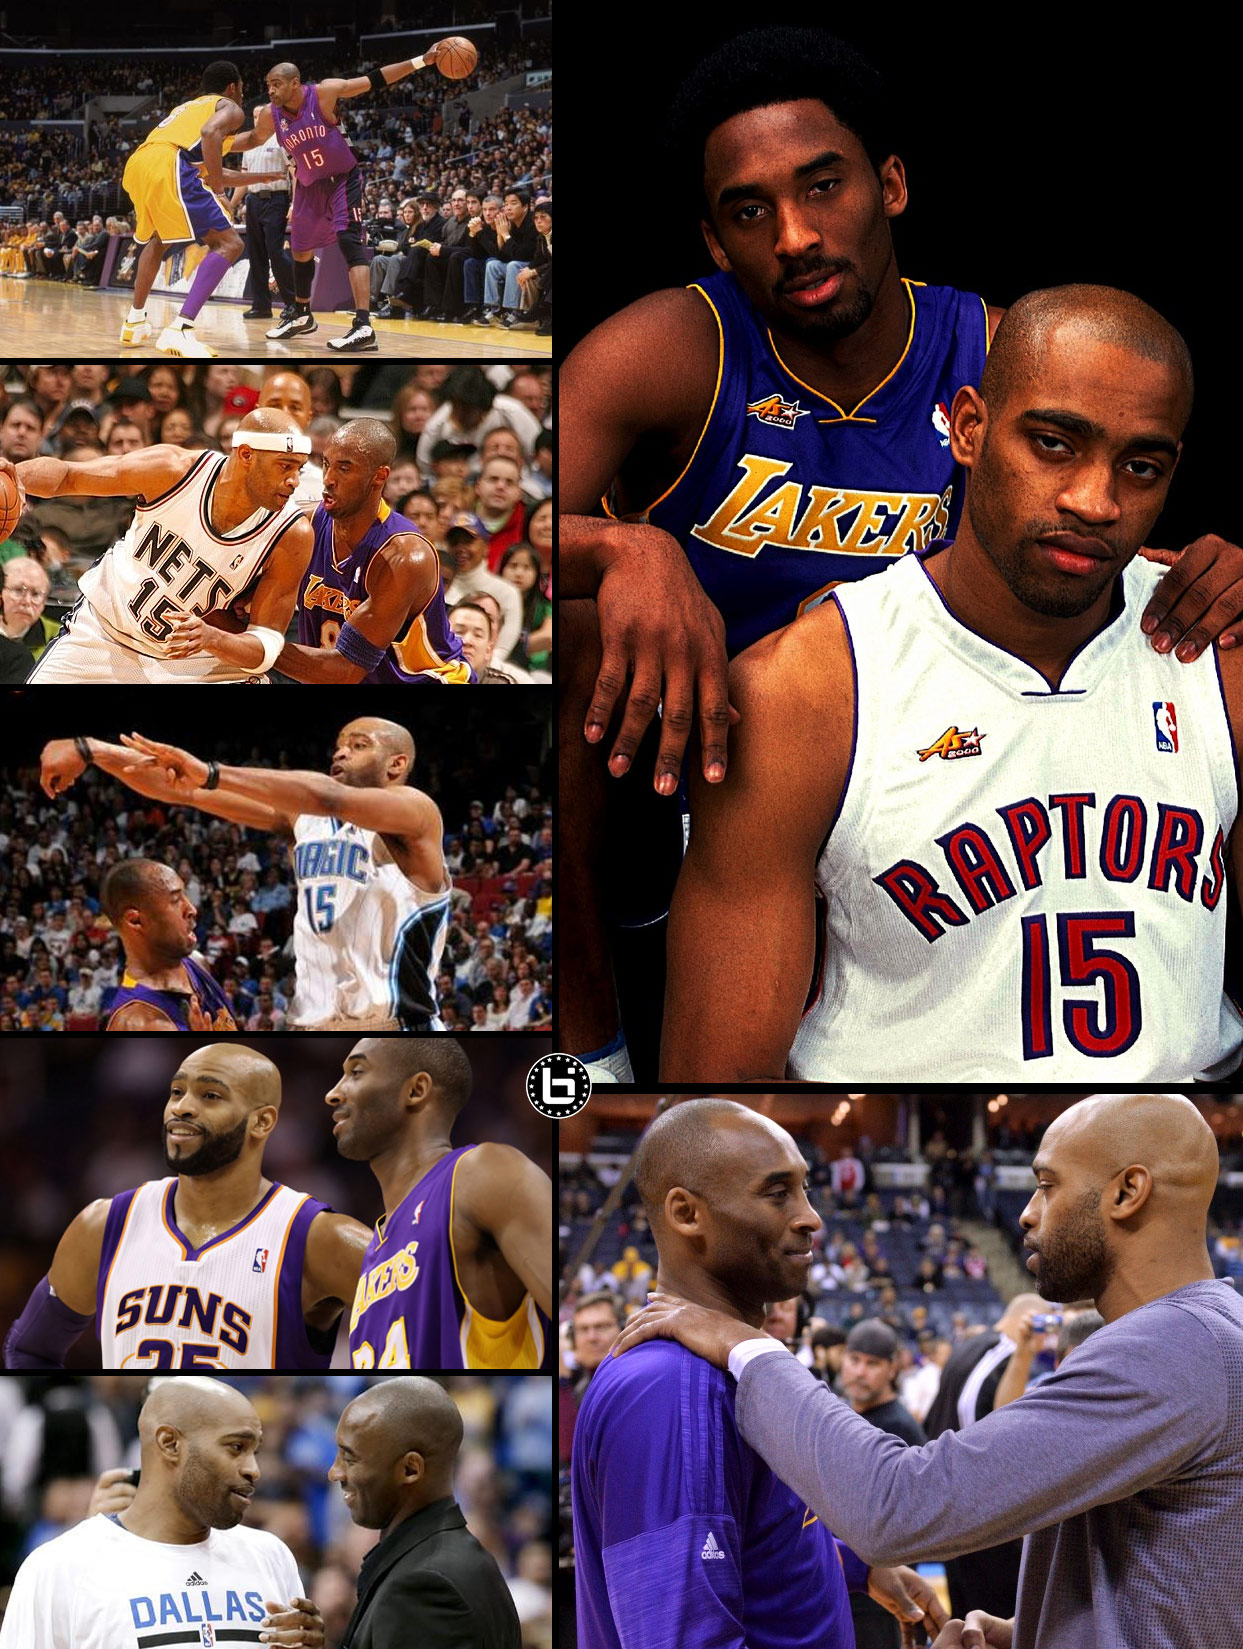 BIL-KOBE-VINCE-LEGENDS